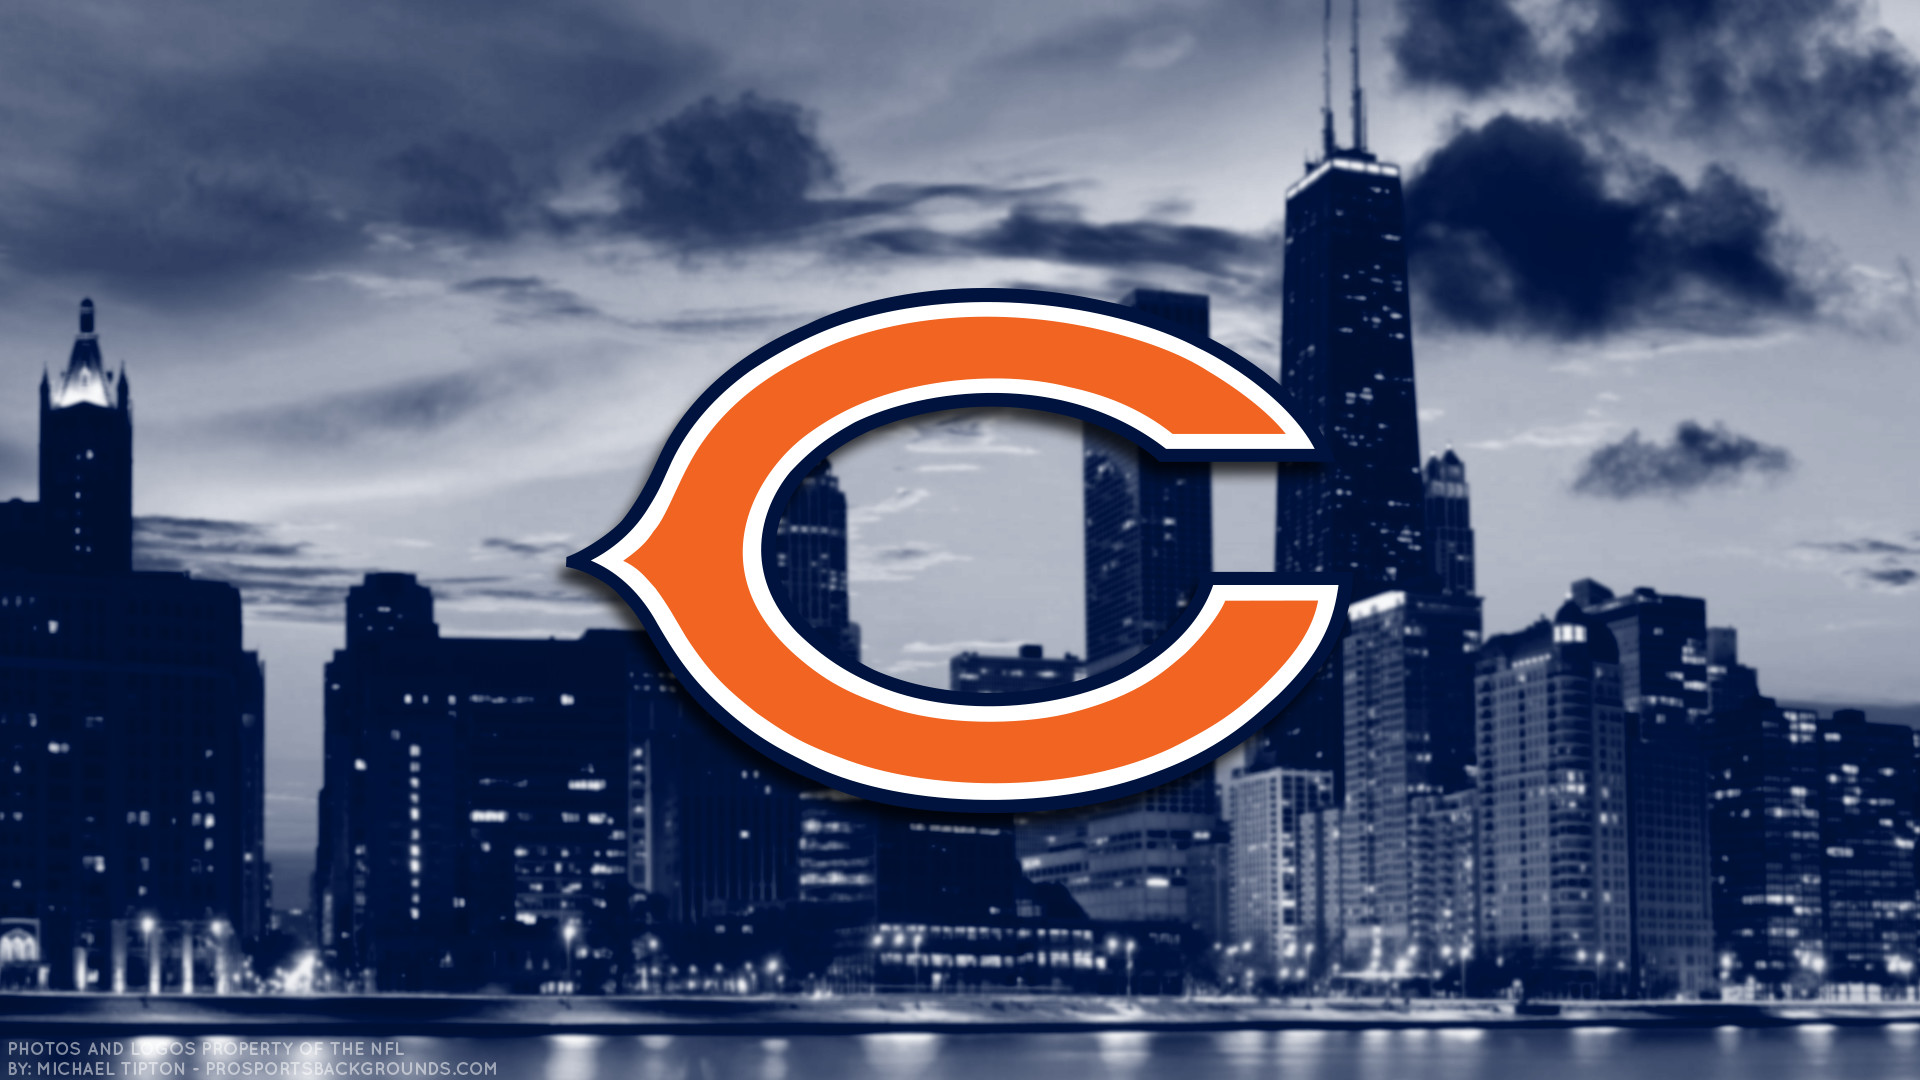 1920x1080 Chicago Bears Wallpaper Widescreen High Quality For Computer Pc  Iphone